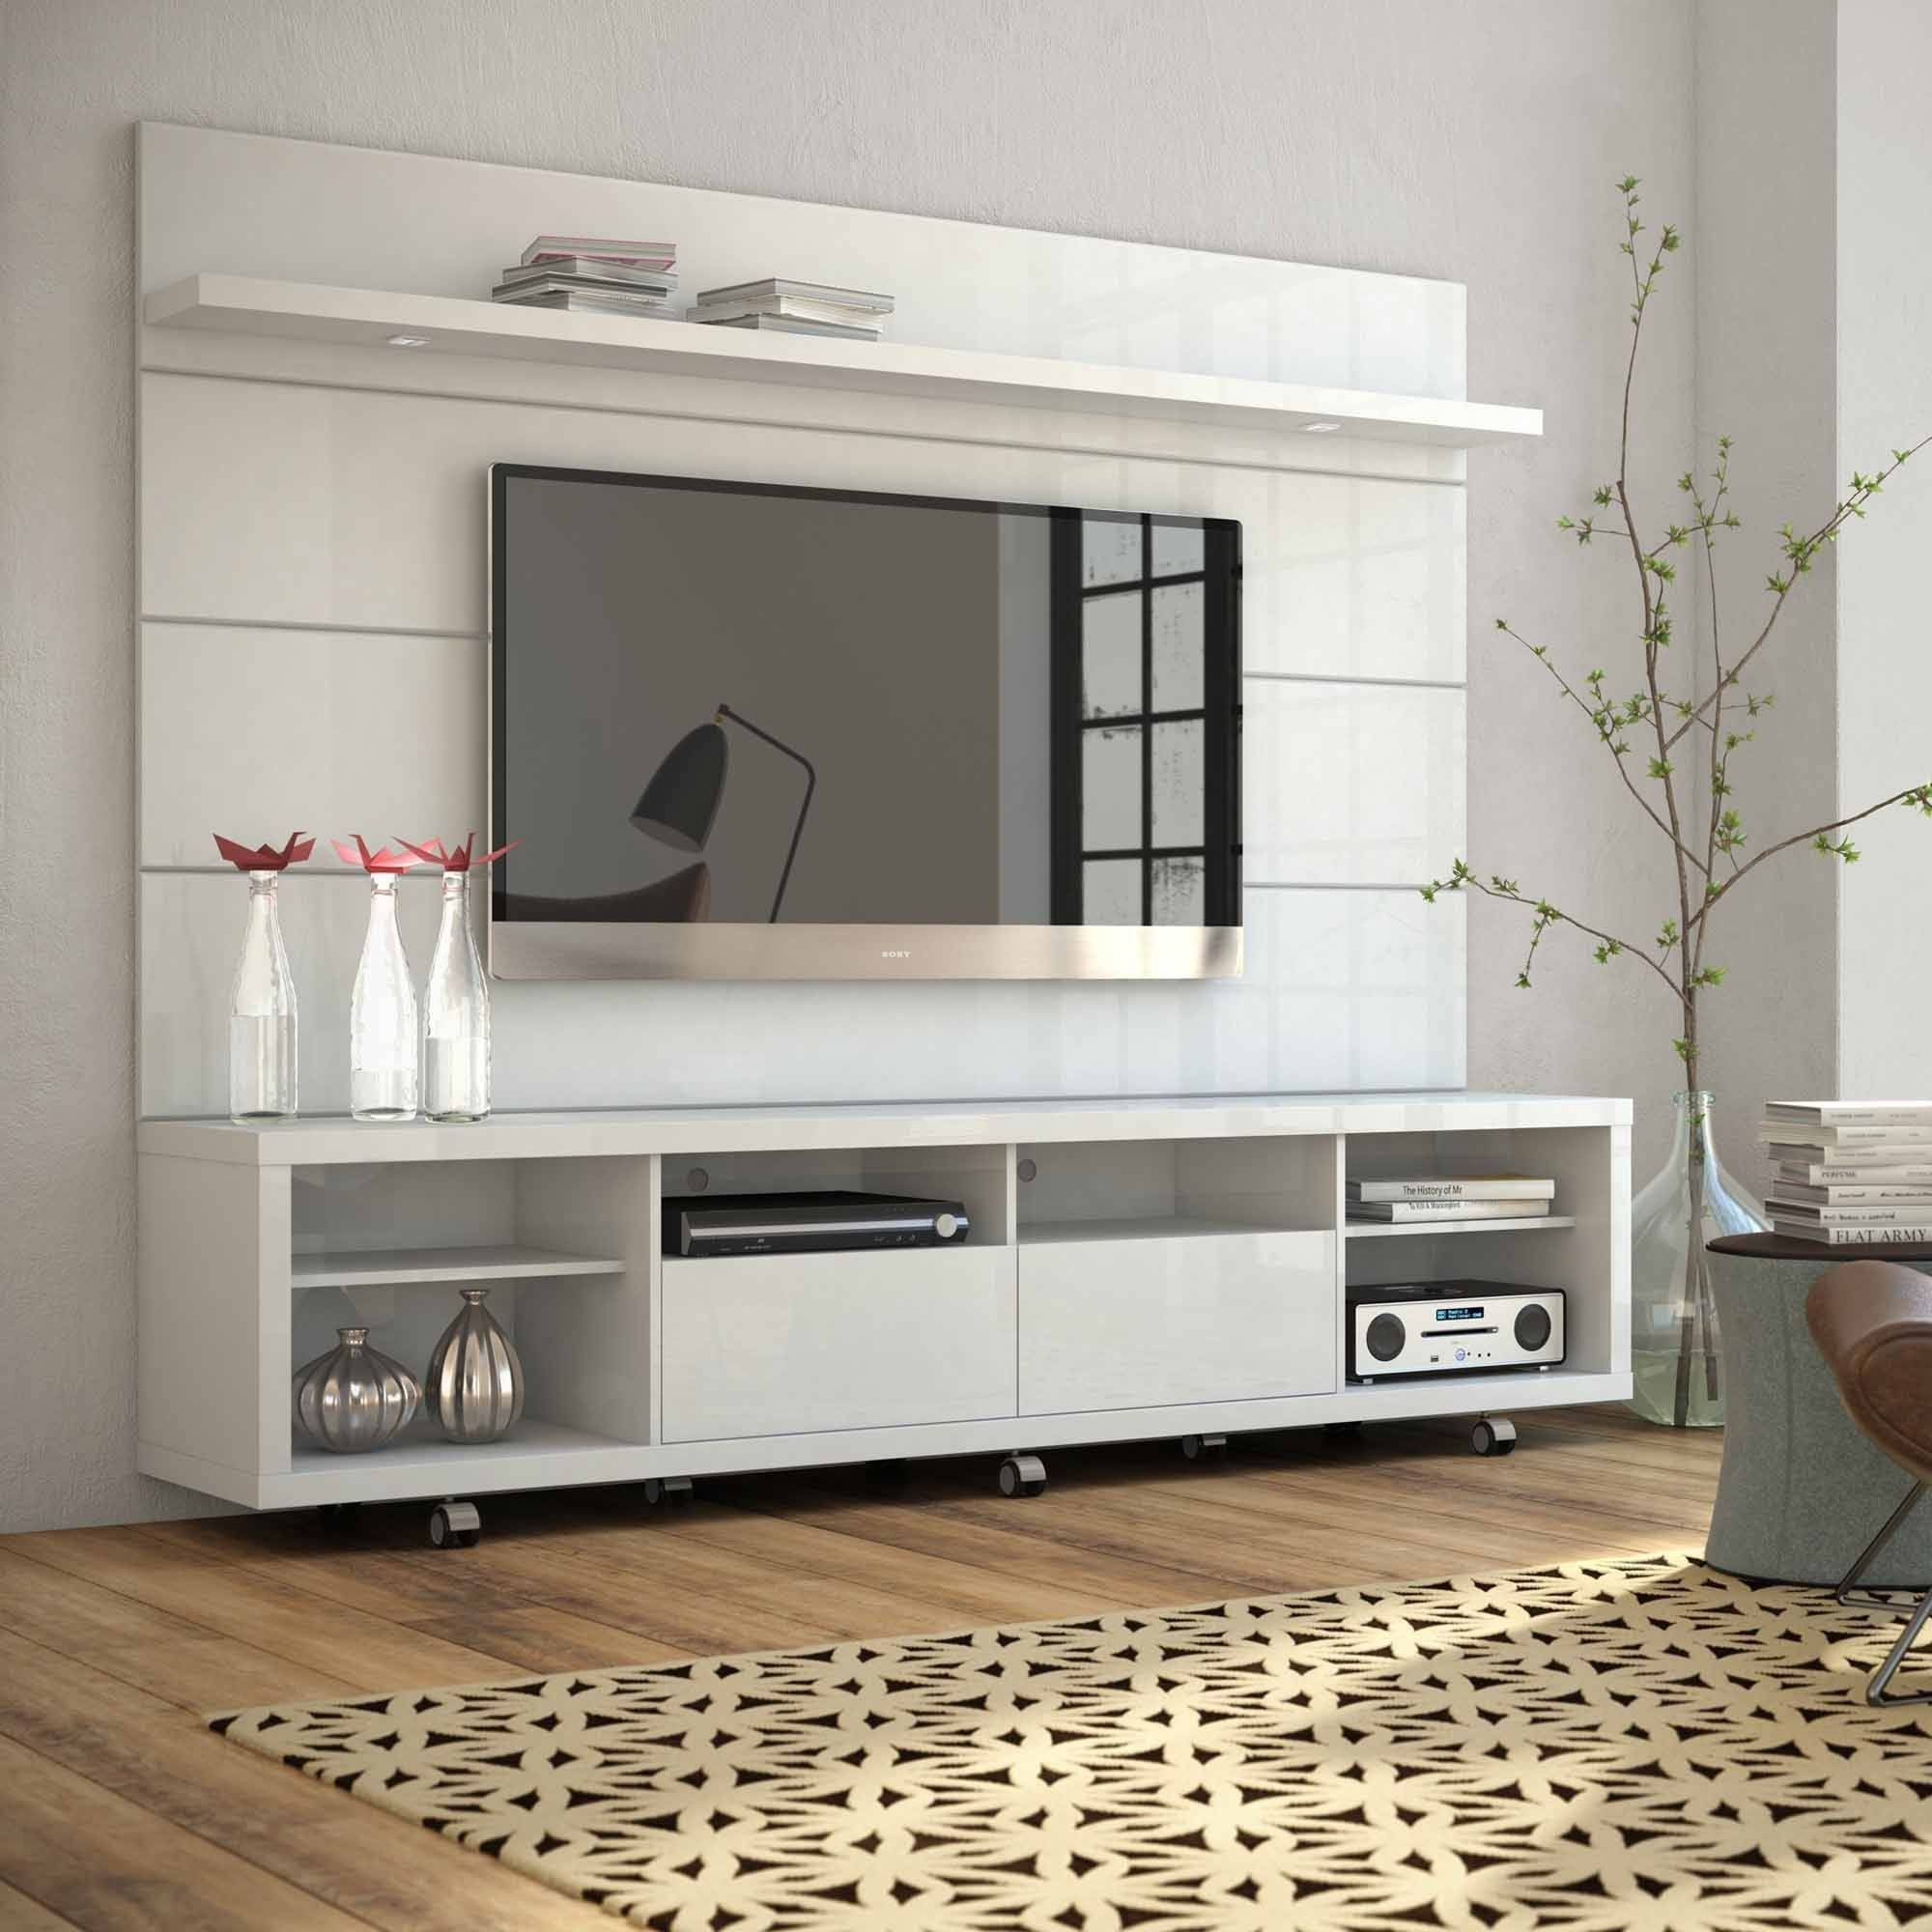 Buy Manhattan Comfort Cabrini TV Stand and Floating Wall TV Panel ...